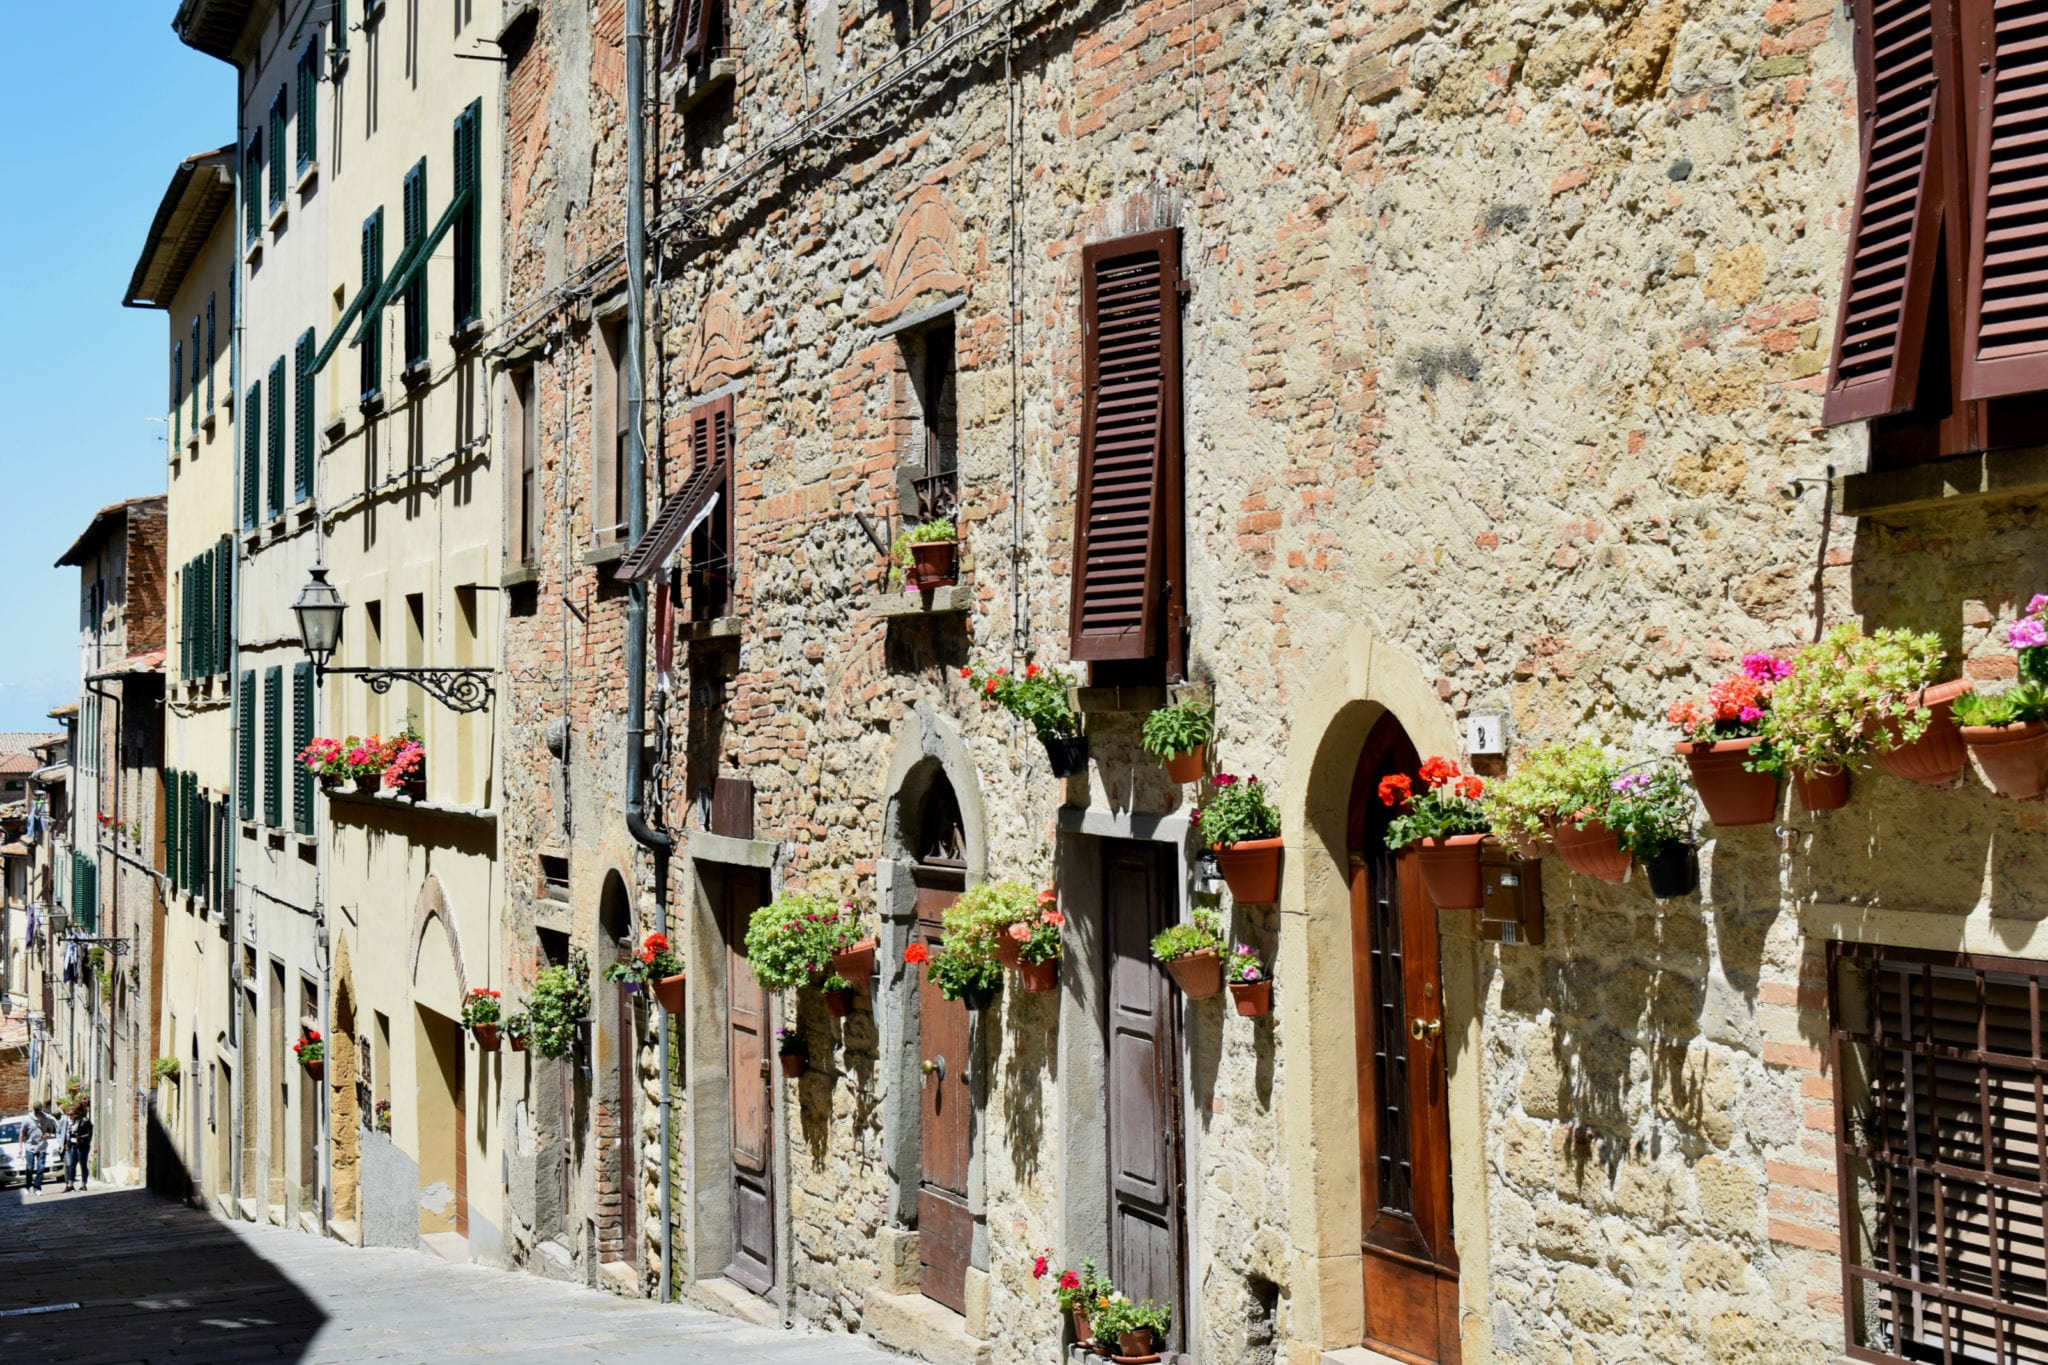 stone buildings with pots of flowers by the doors in tuscany